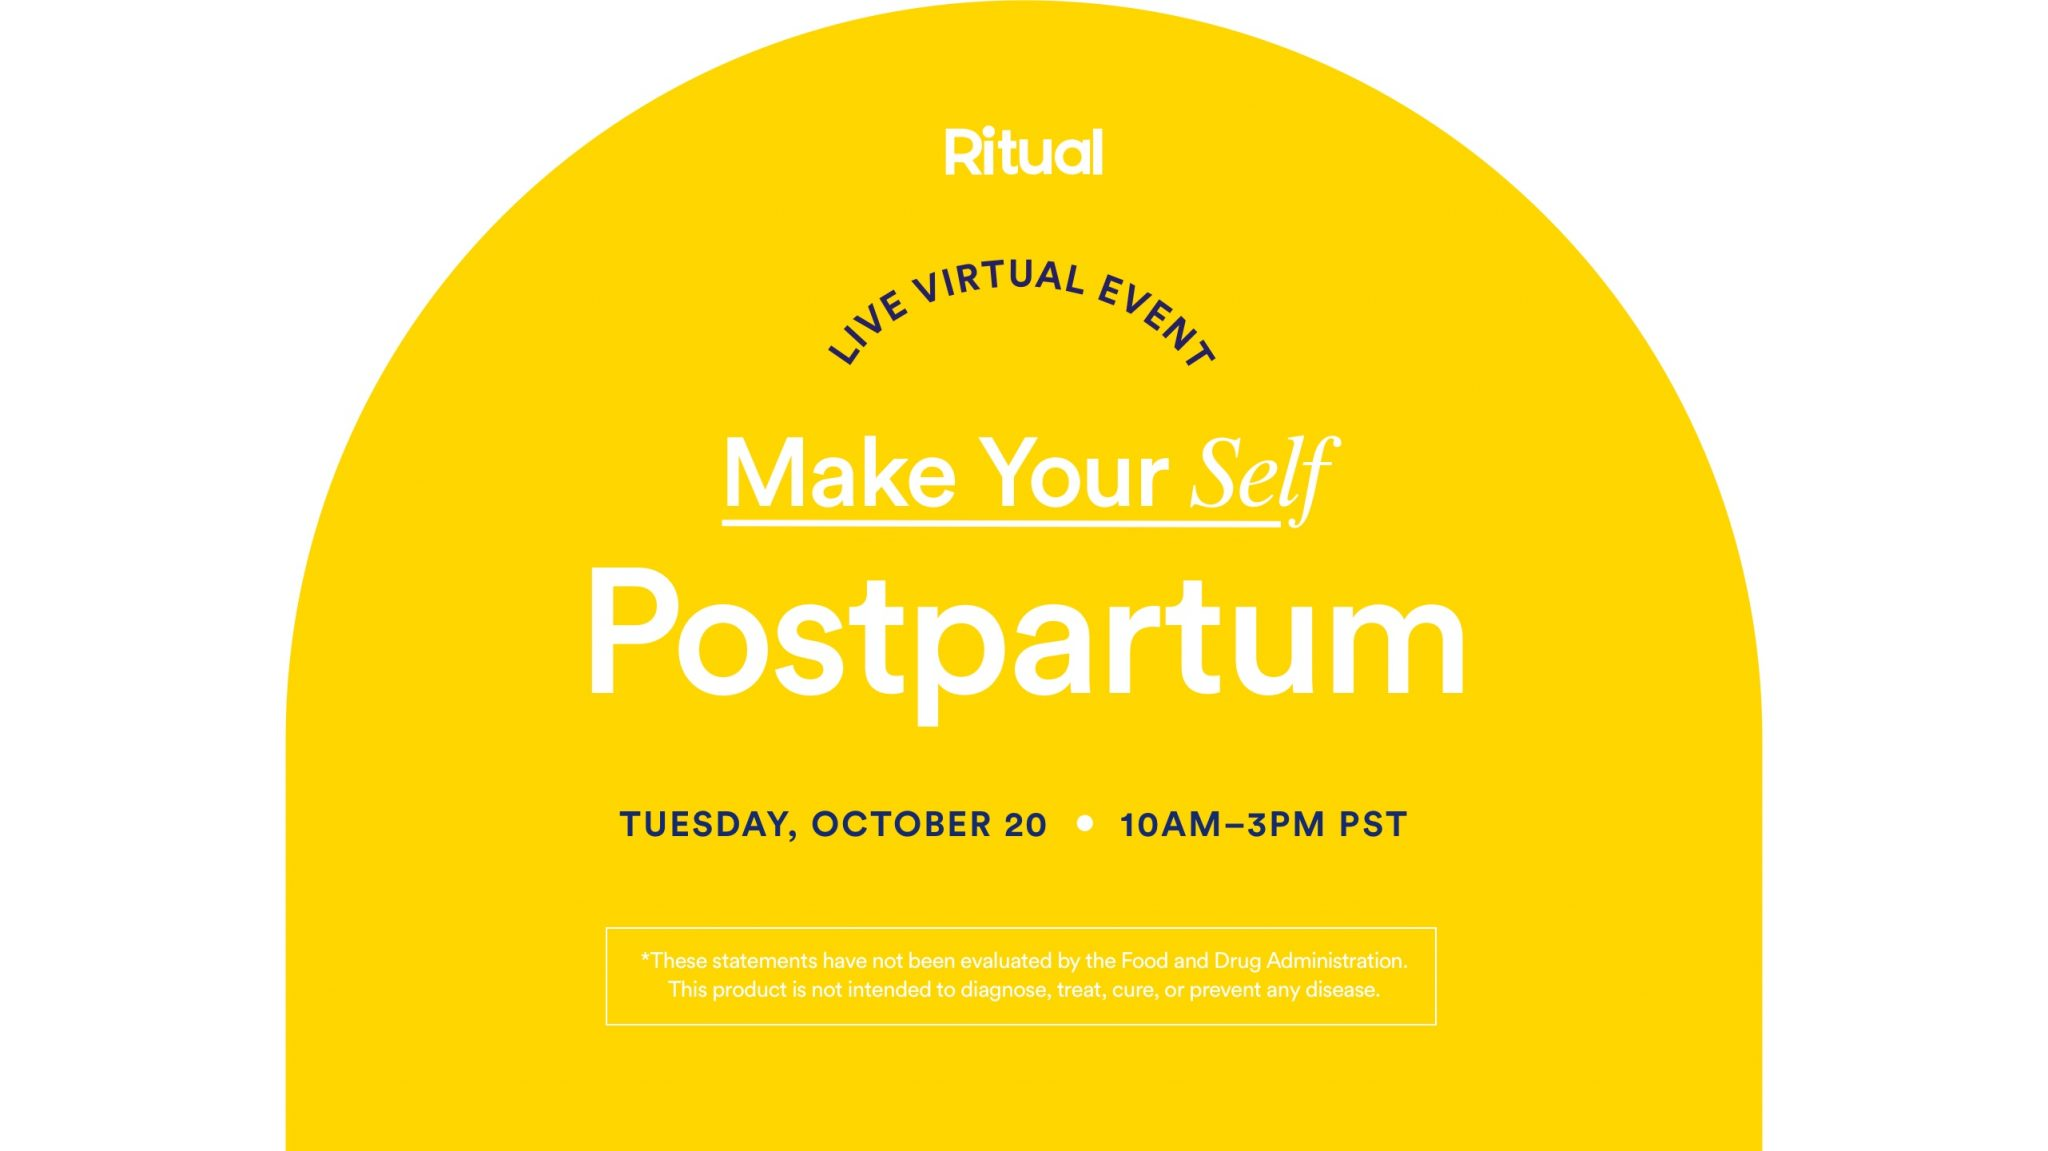 Ritual's Make Your Self: Postpartum